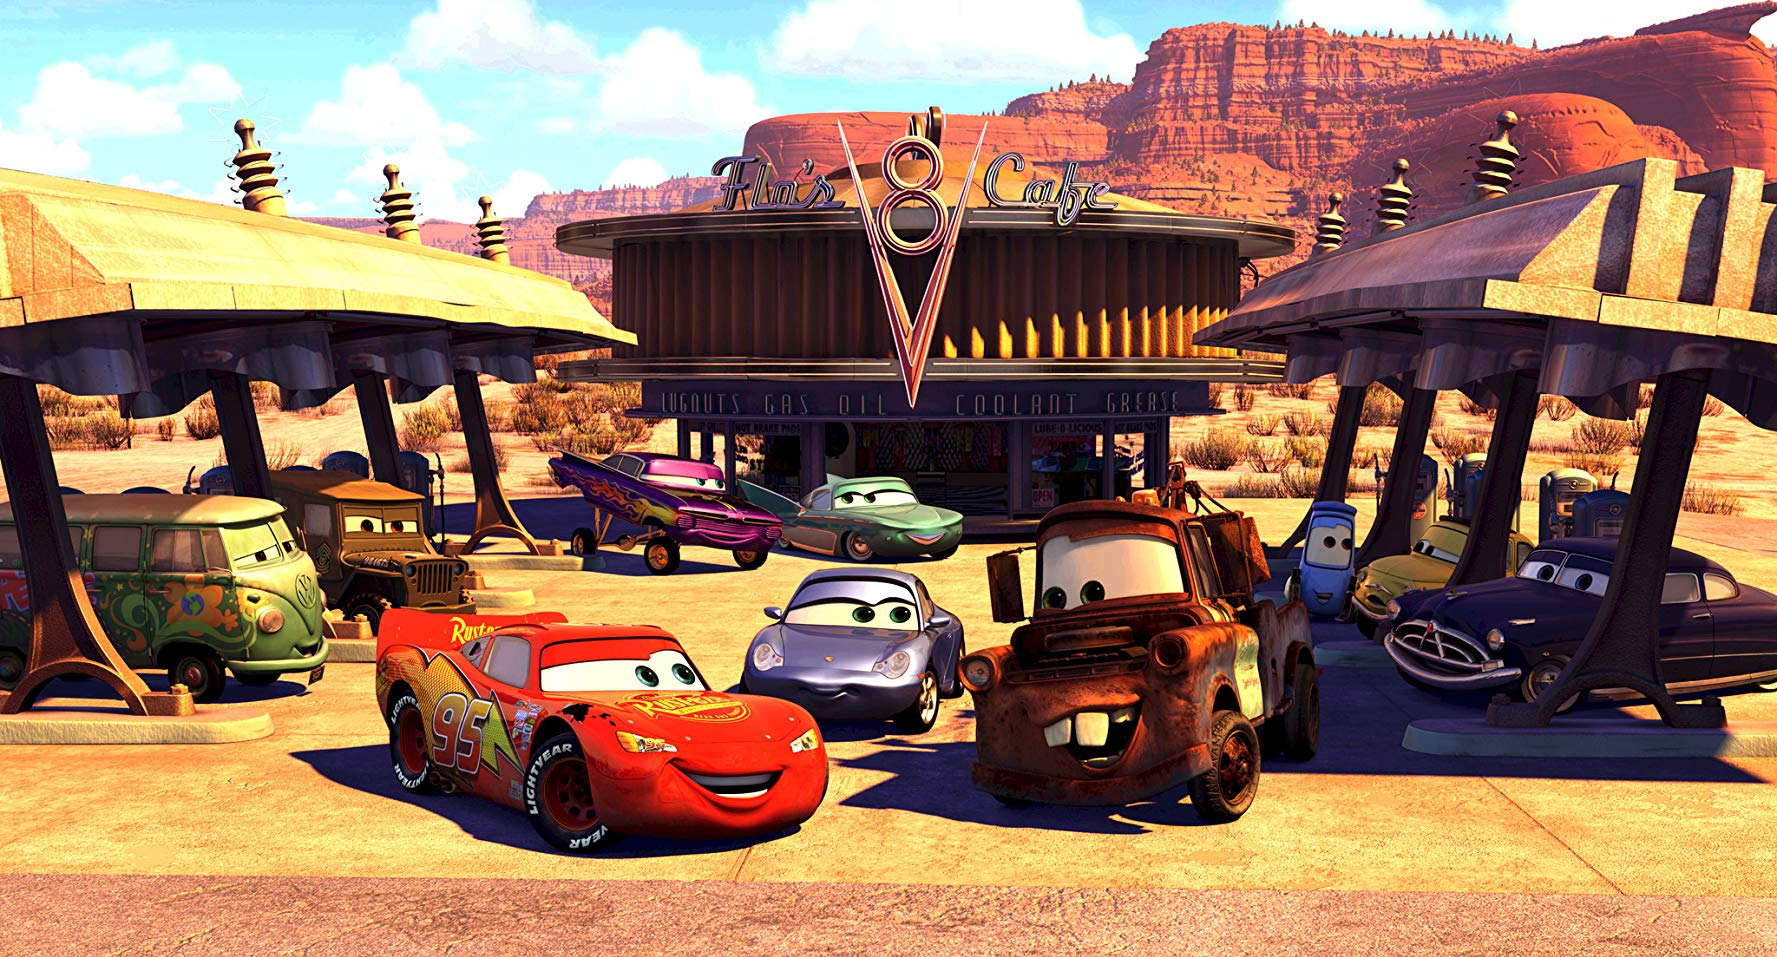 Lightning McQueen discovers the joys of the quiet life among the vehicles of Radiator Springs in Cars (2006)